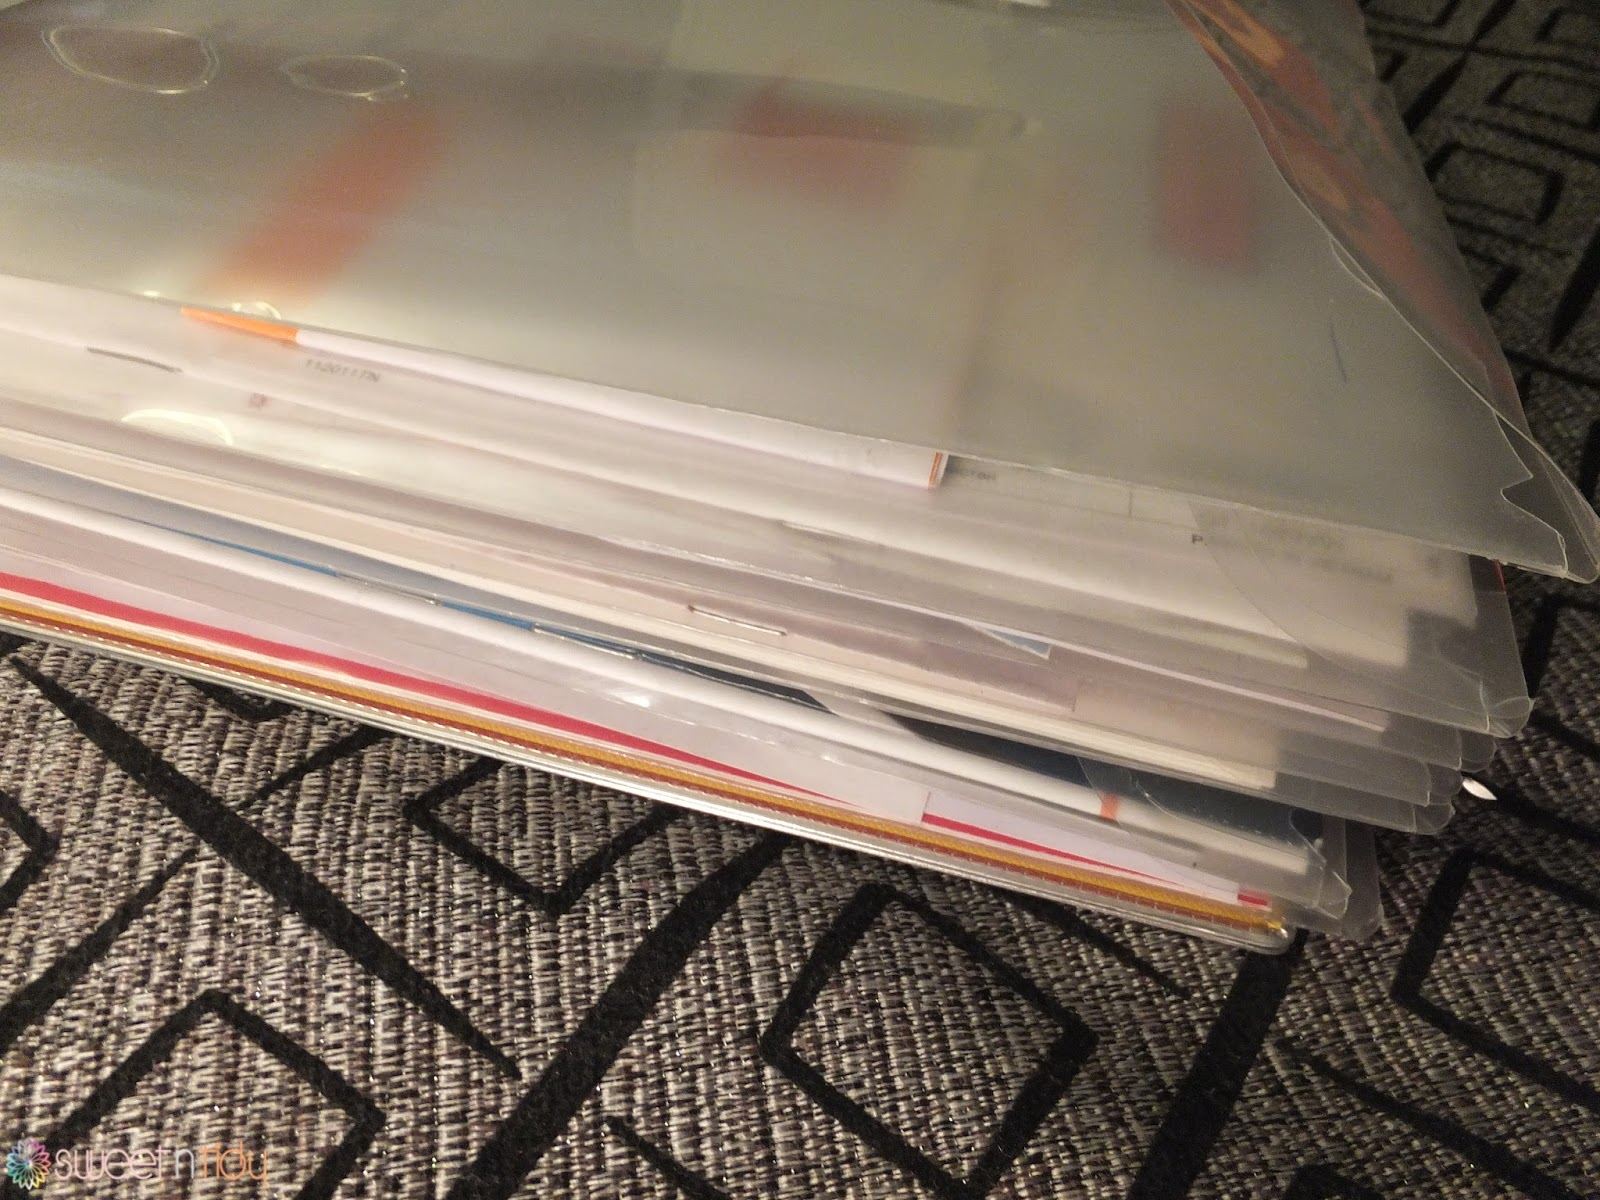 How to organize manuals